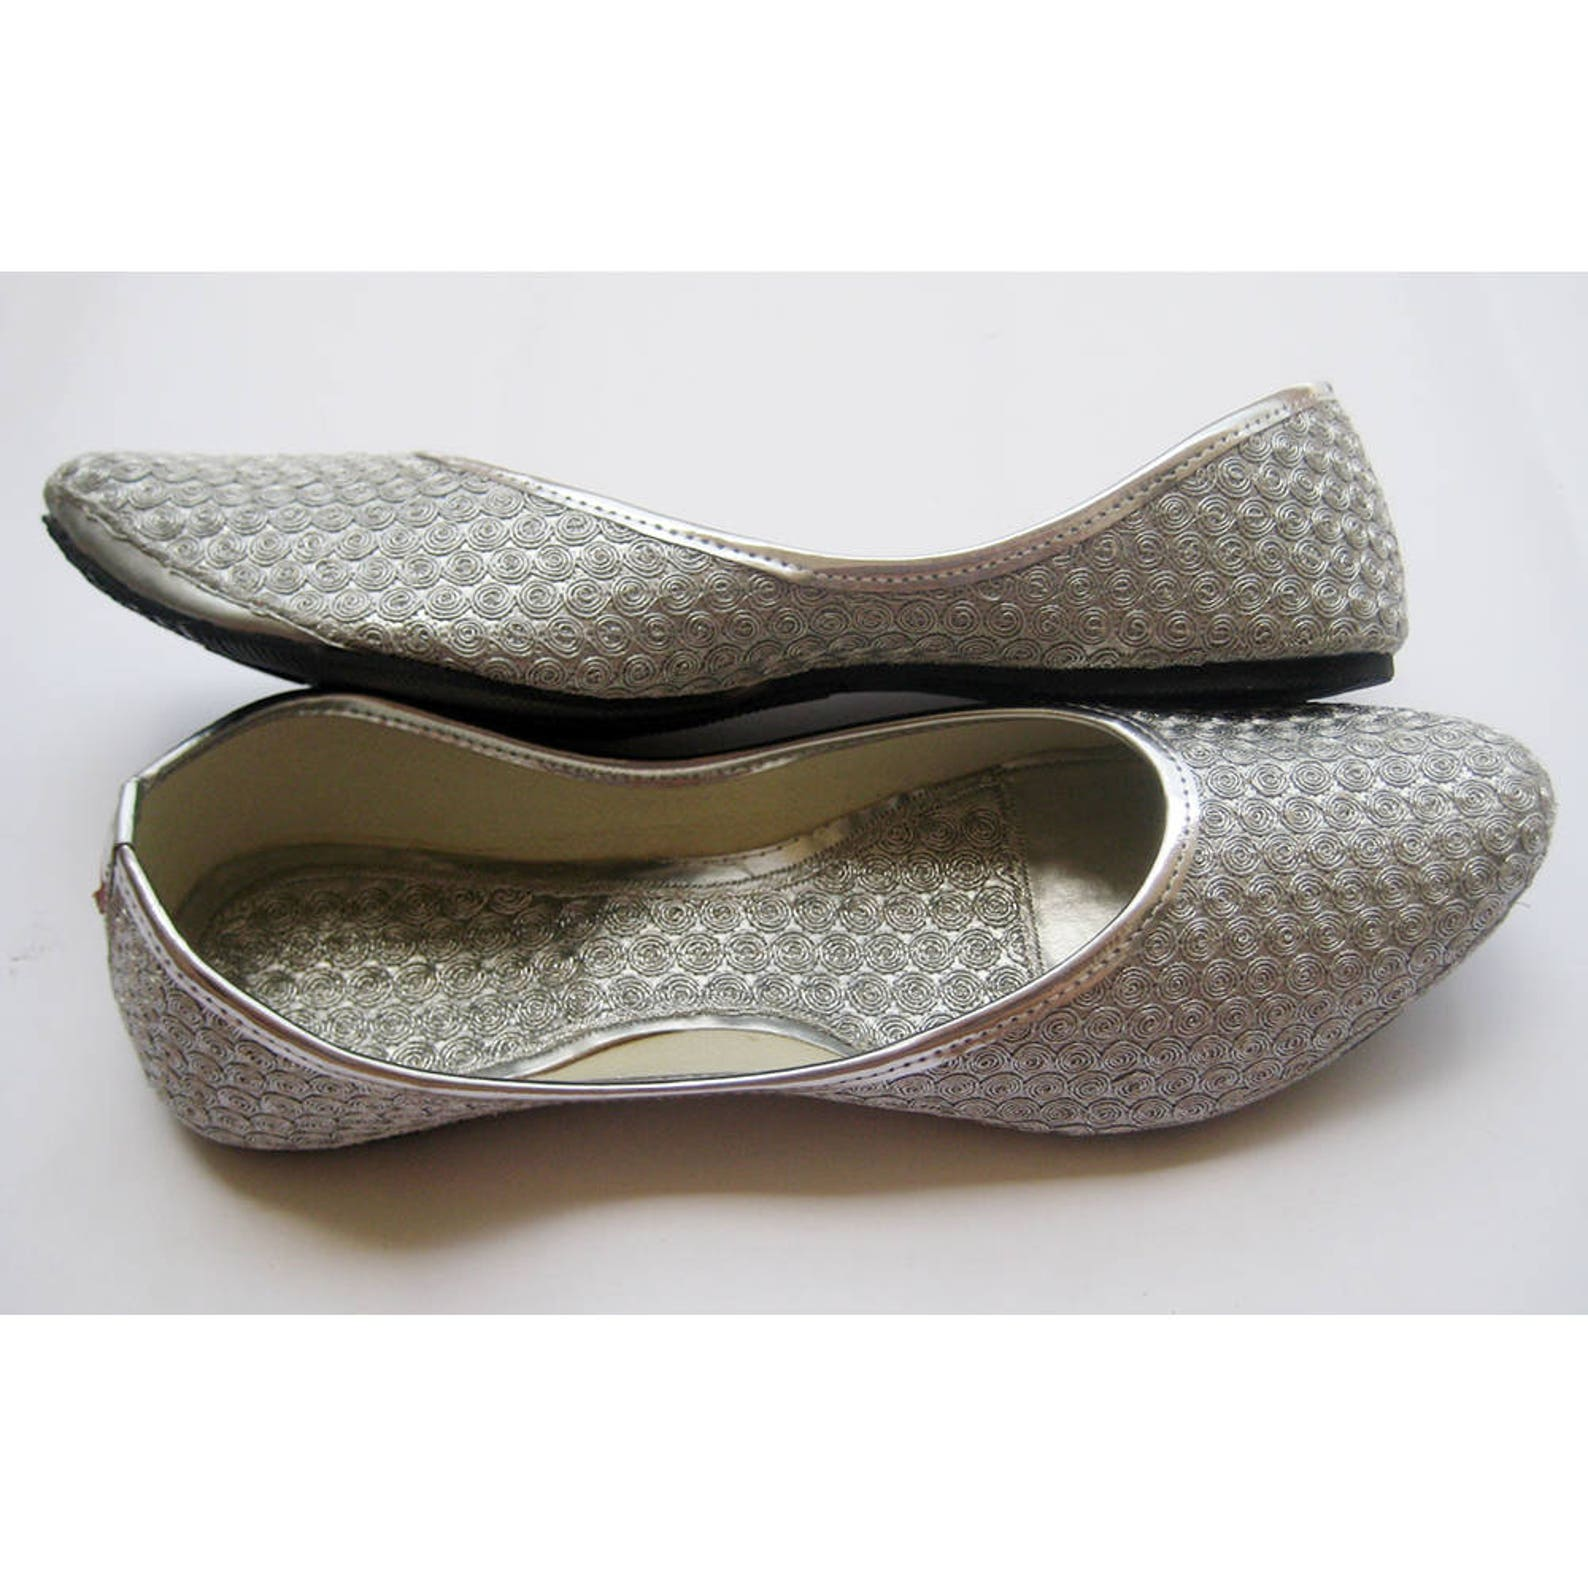 womens silver coin ballet flats/silver shoes/women shoes/wedding shoes/handmade indian designer women shoes or slippers